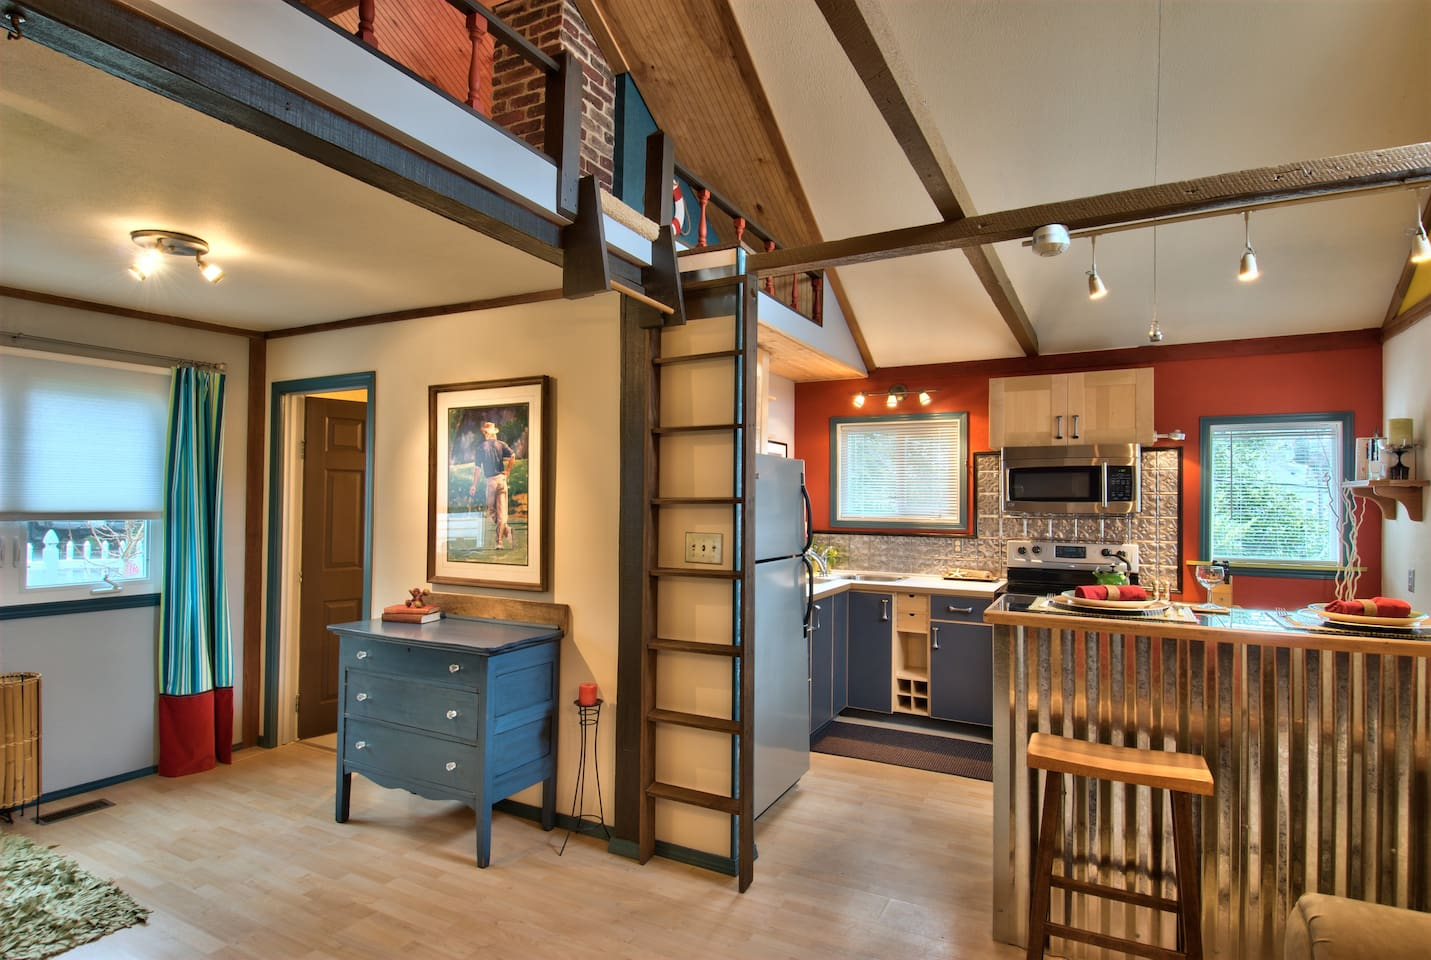 Entry at Left; viewing Kitchen from Living Room and peak of Loft